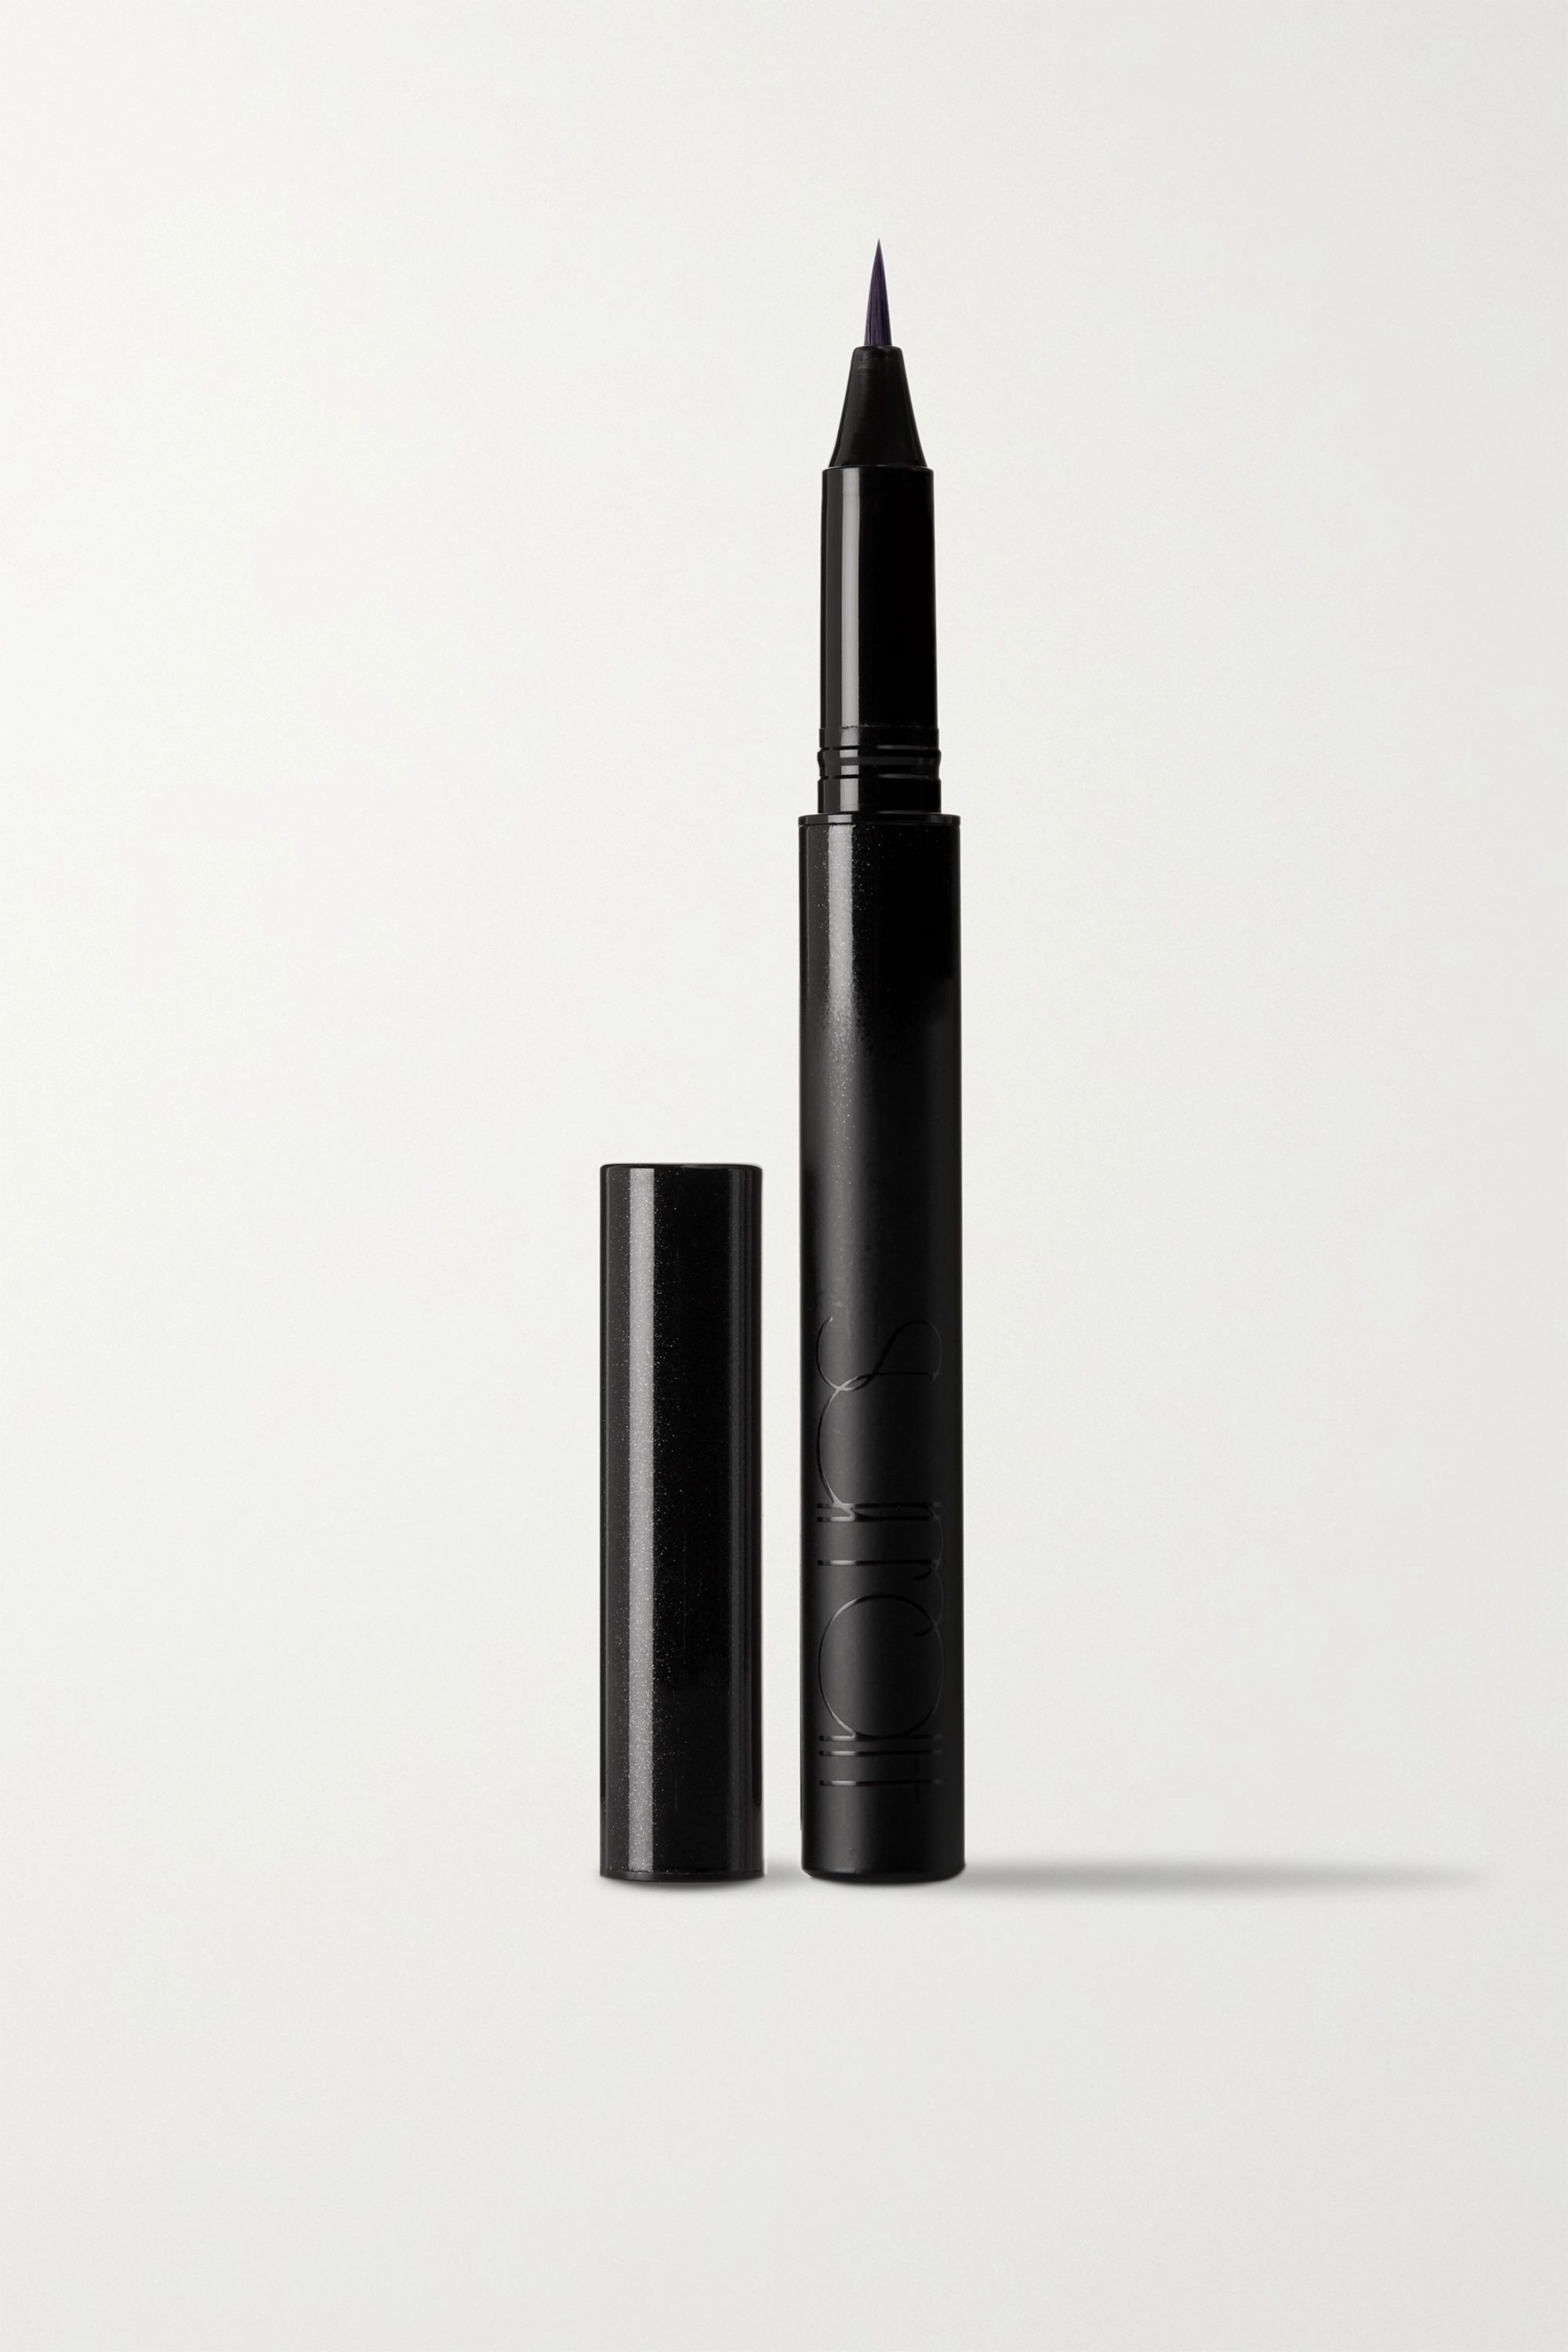 Surratt Beauty Auto-Graphique Eyeliner – 4 Poupre – Eyeliner